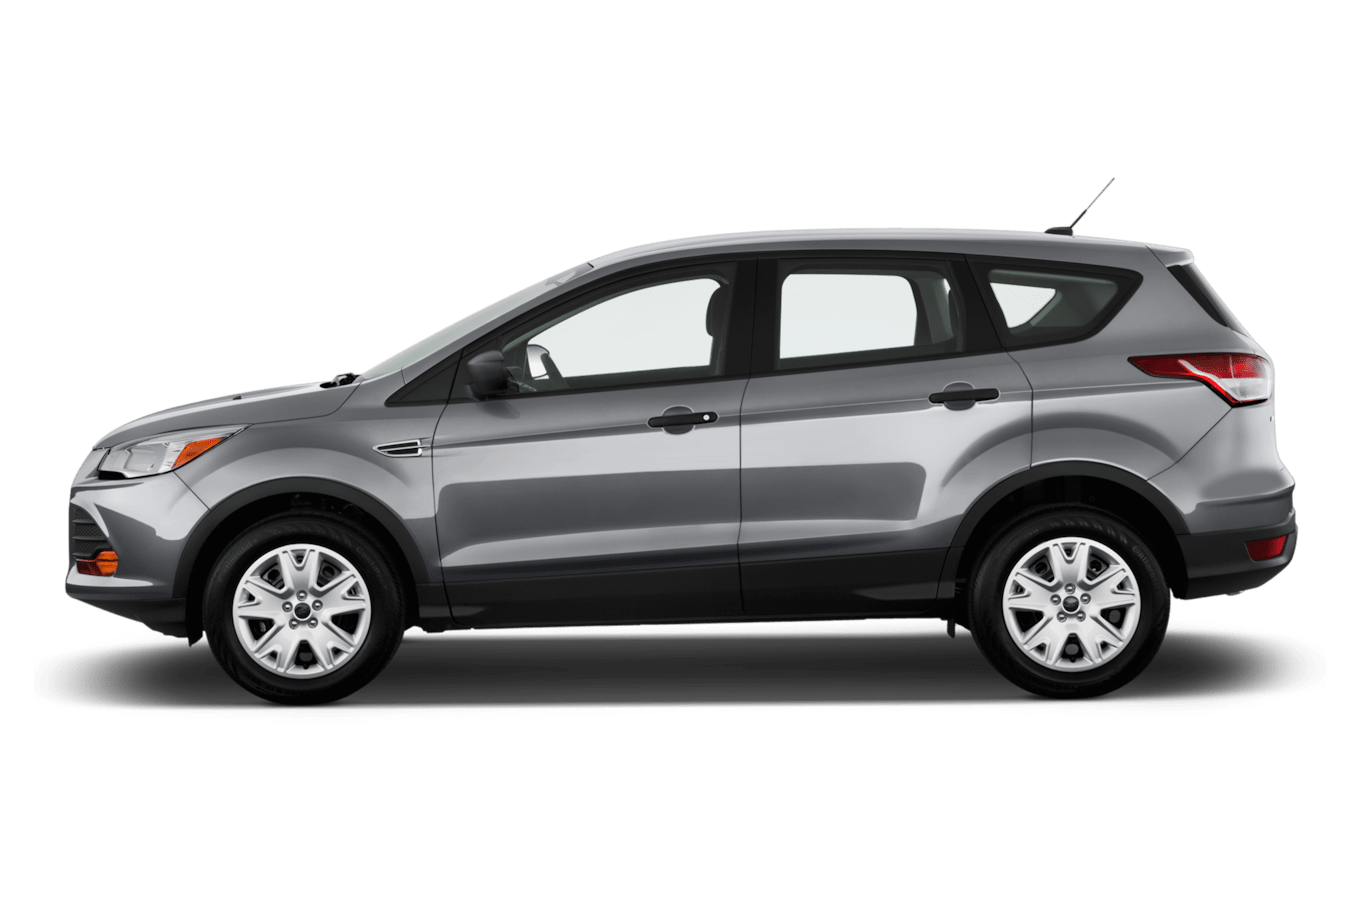 2014 Ford Escape Reviews and Rating  Motor Trend